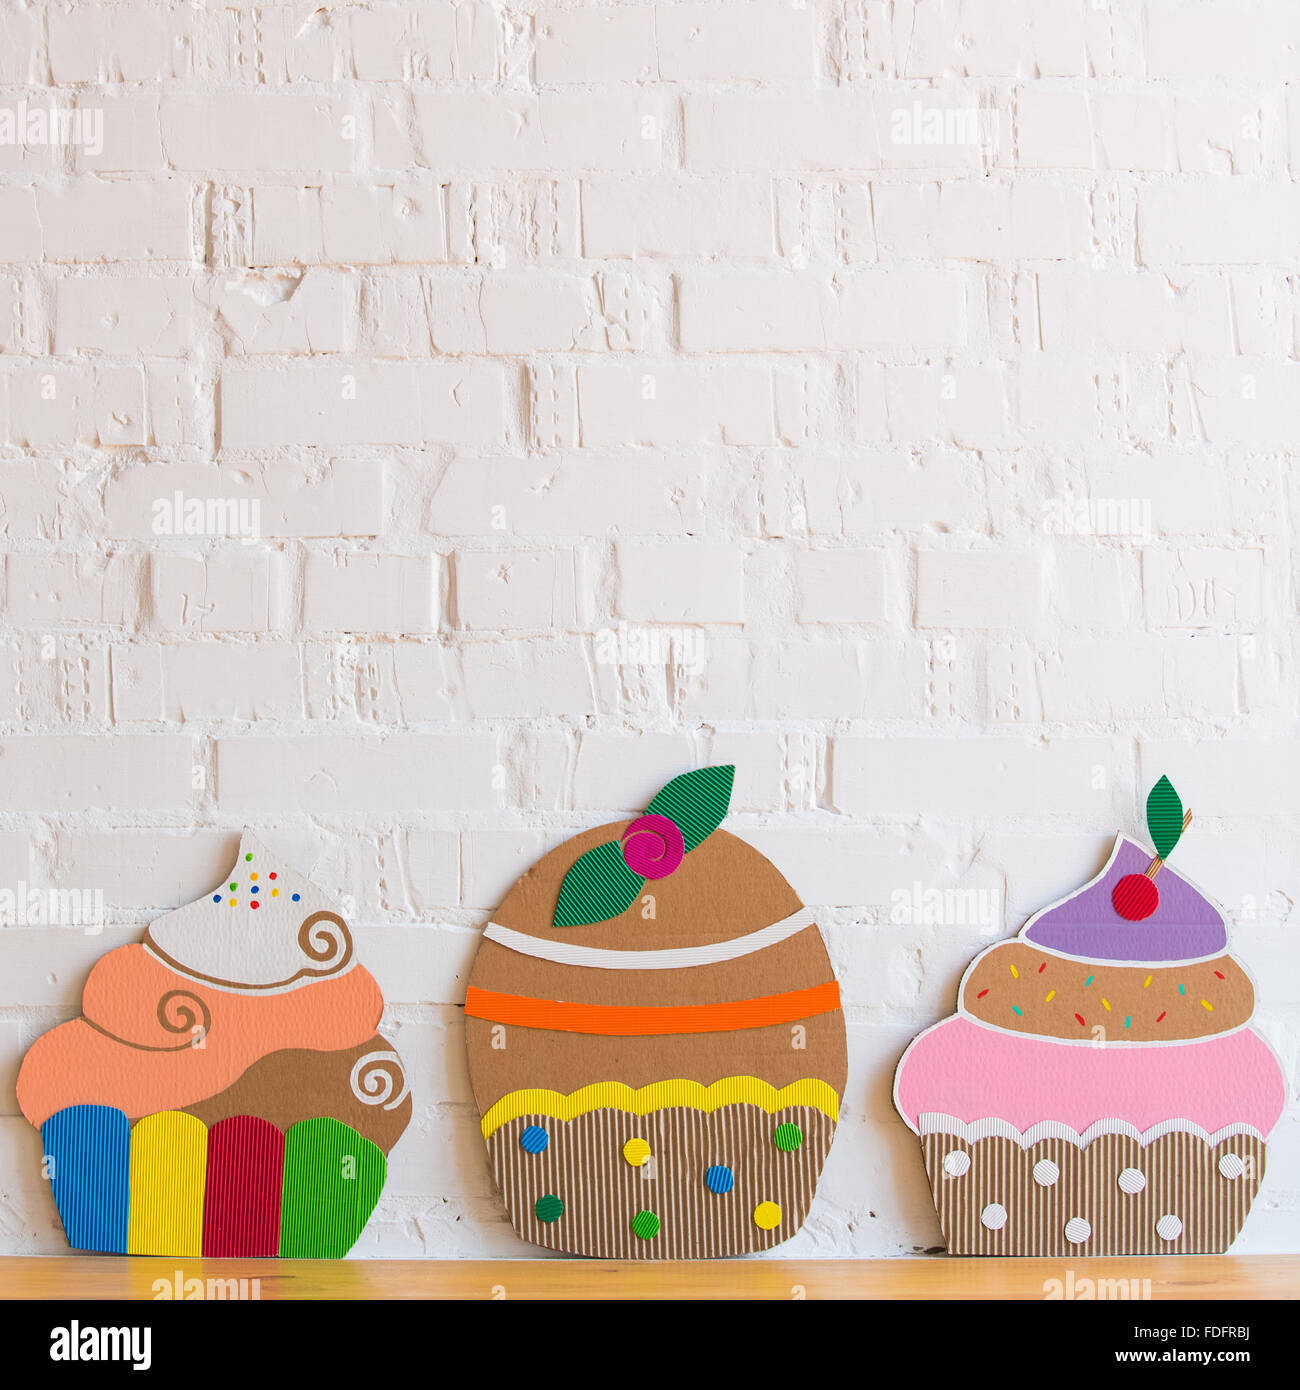 colored cakes handmade of cardboar Stock Photo Royalty Free Image